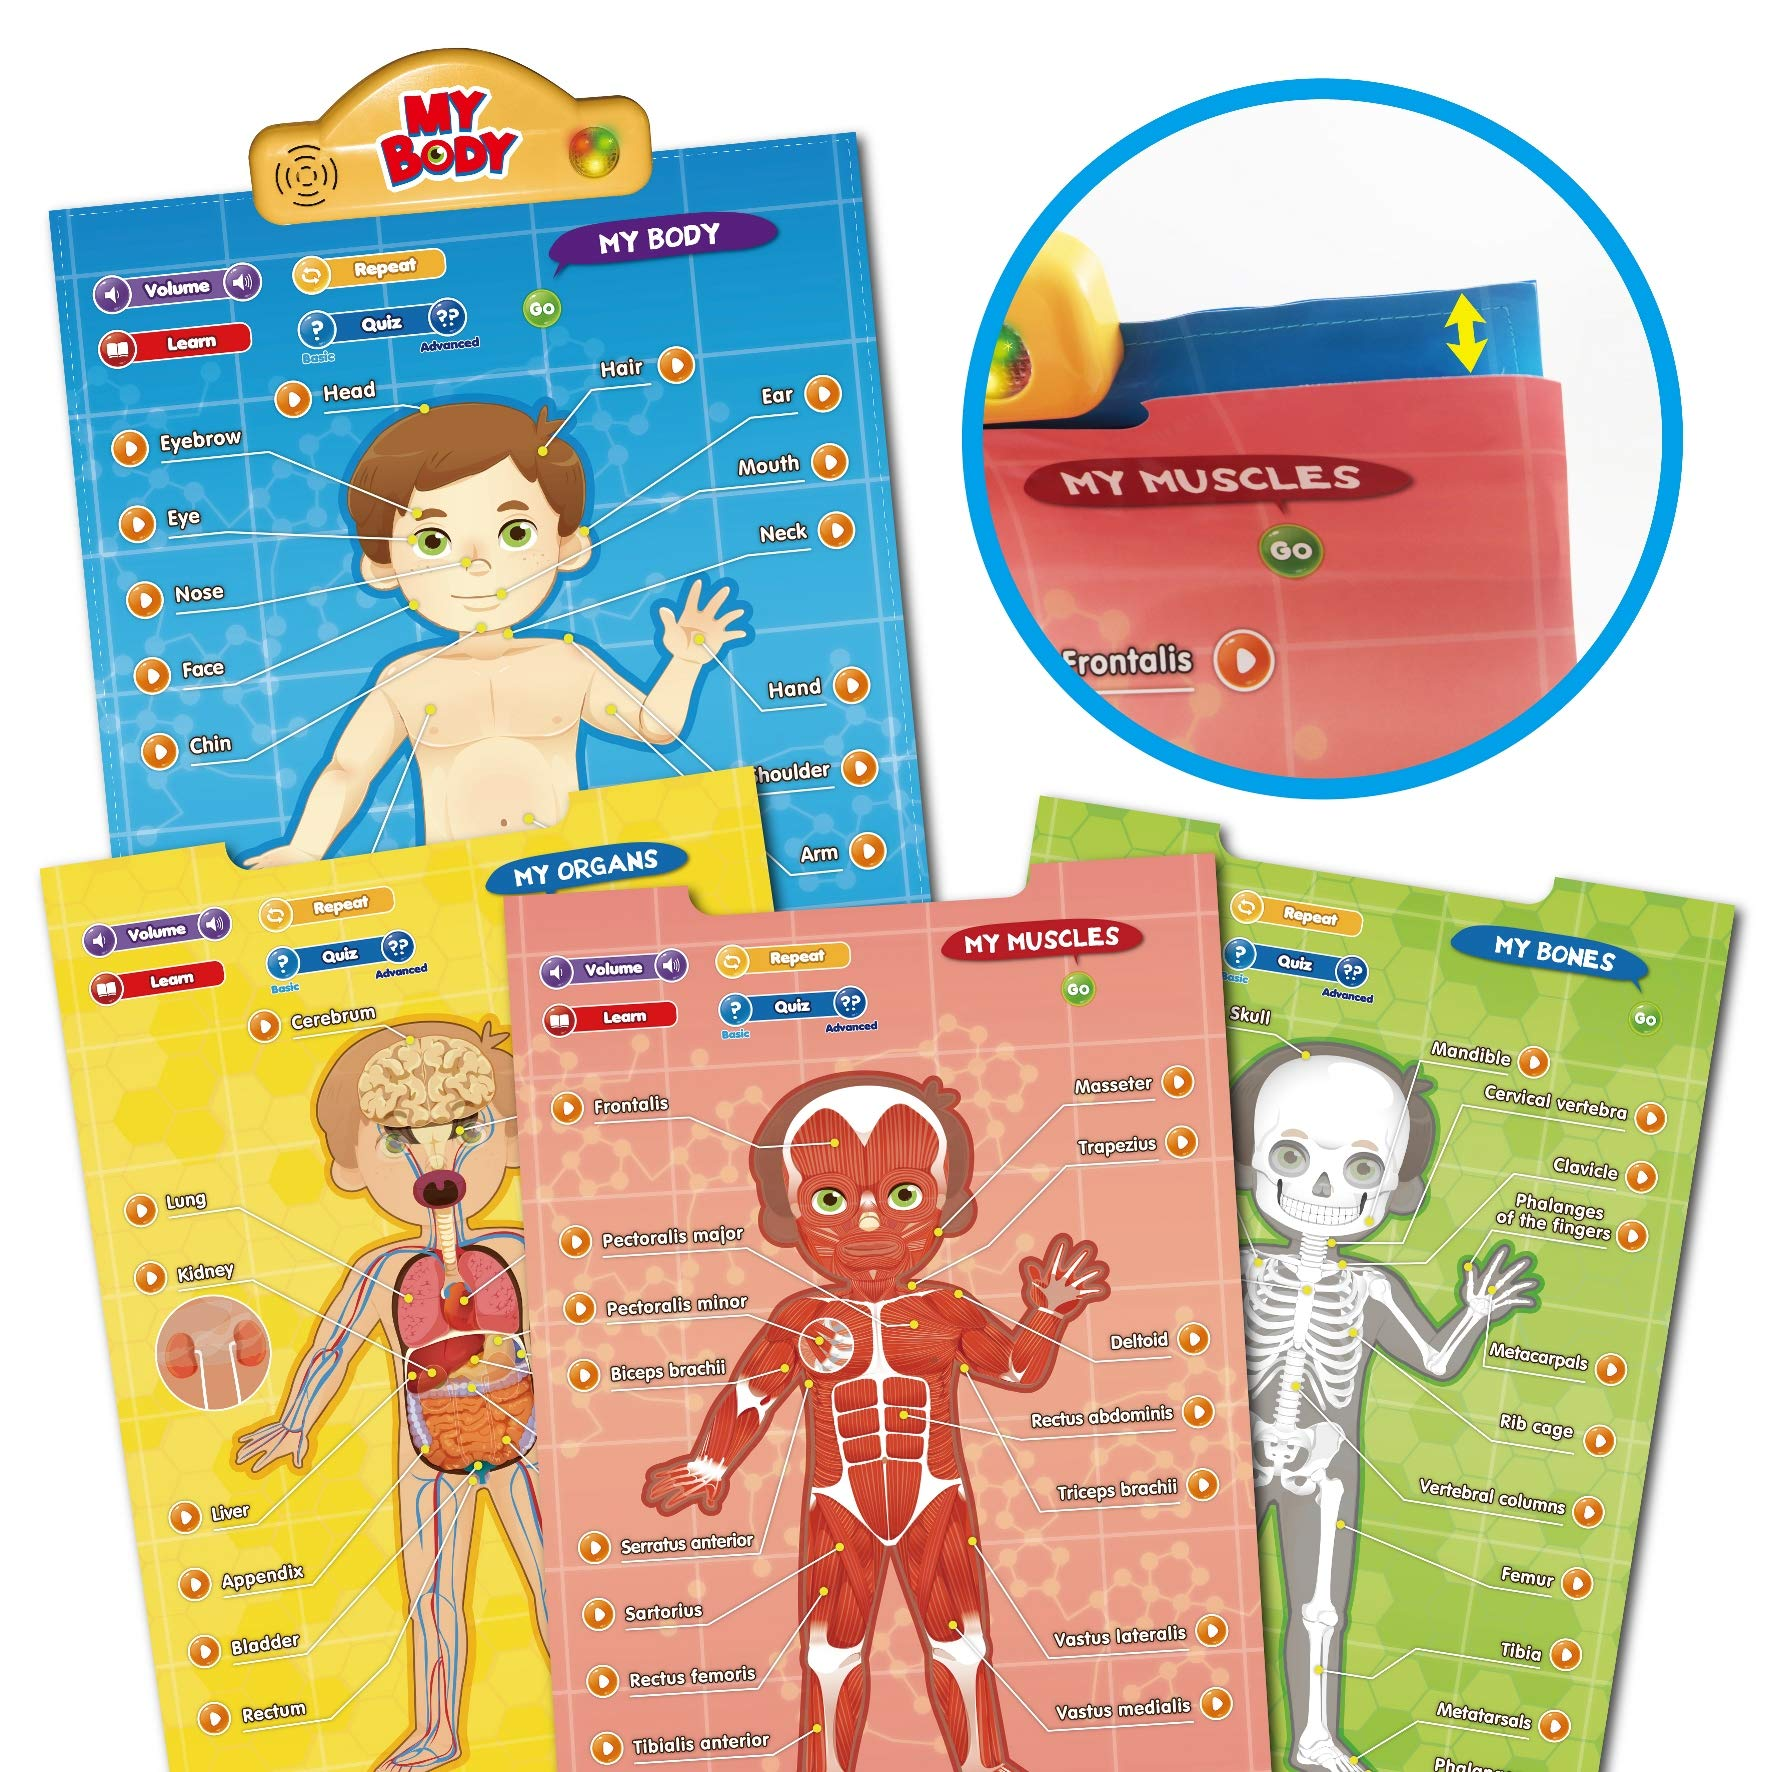 BEST LEARNING i-Poster My Body - Interactive Educational Human Anatomy Talking Game Toy System to Learn Body Parts, Organs, Muscles and Bones for Kids Aged 5 to 12 by BEST LEARNING (Image #9)